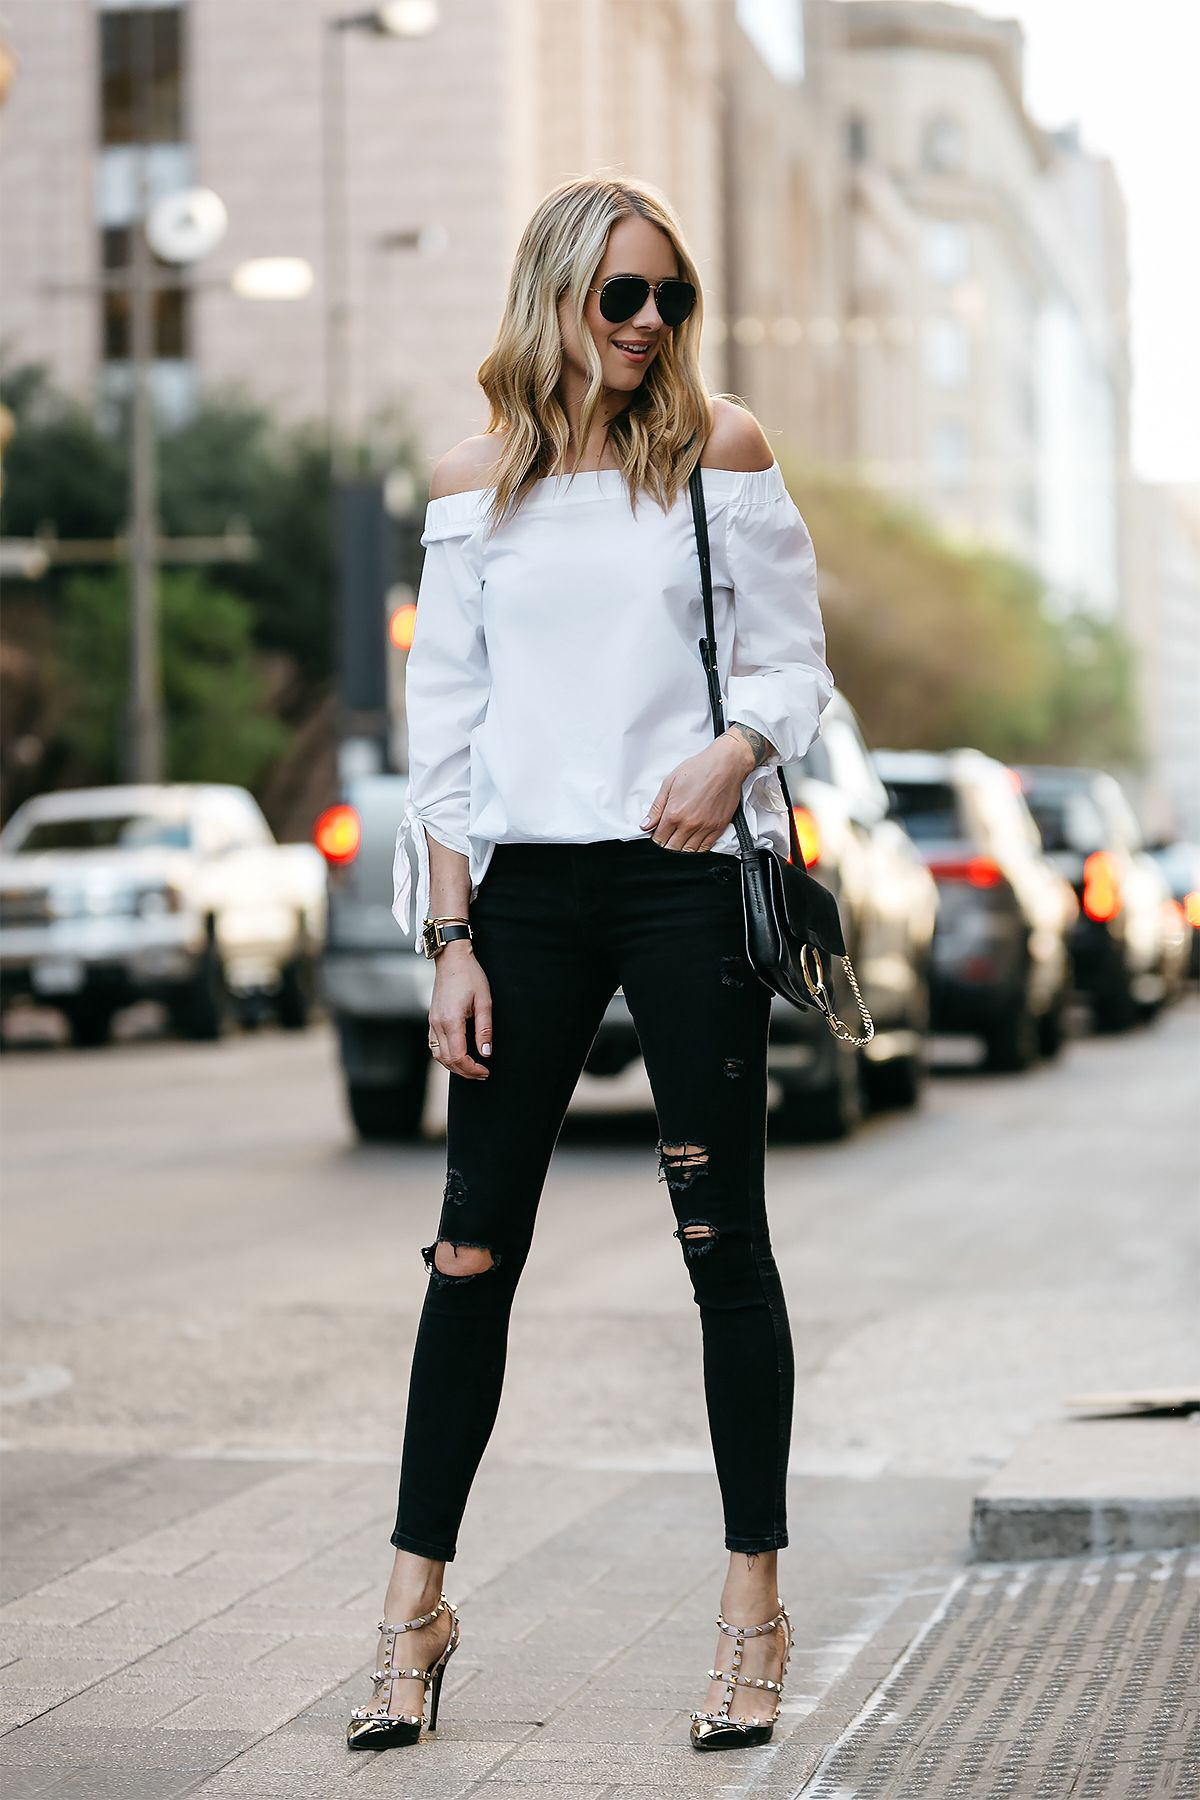 Top Fashion Bloggers In Dallas - Fashion jackson dallas blogger fashion blogger street style free people off